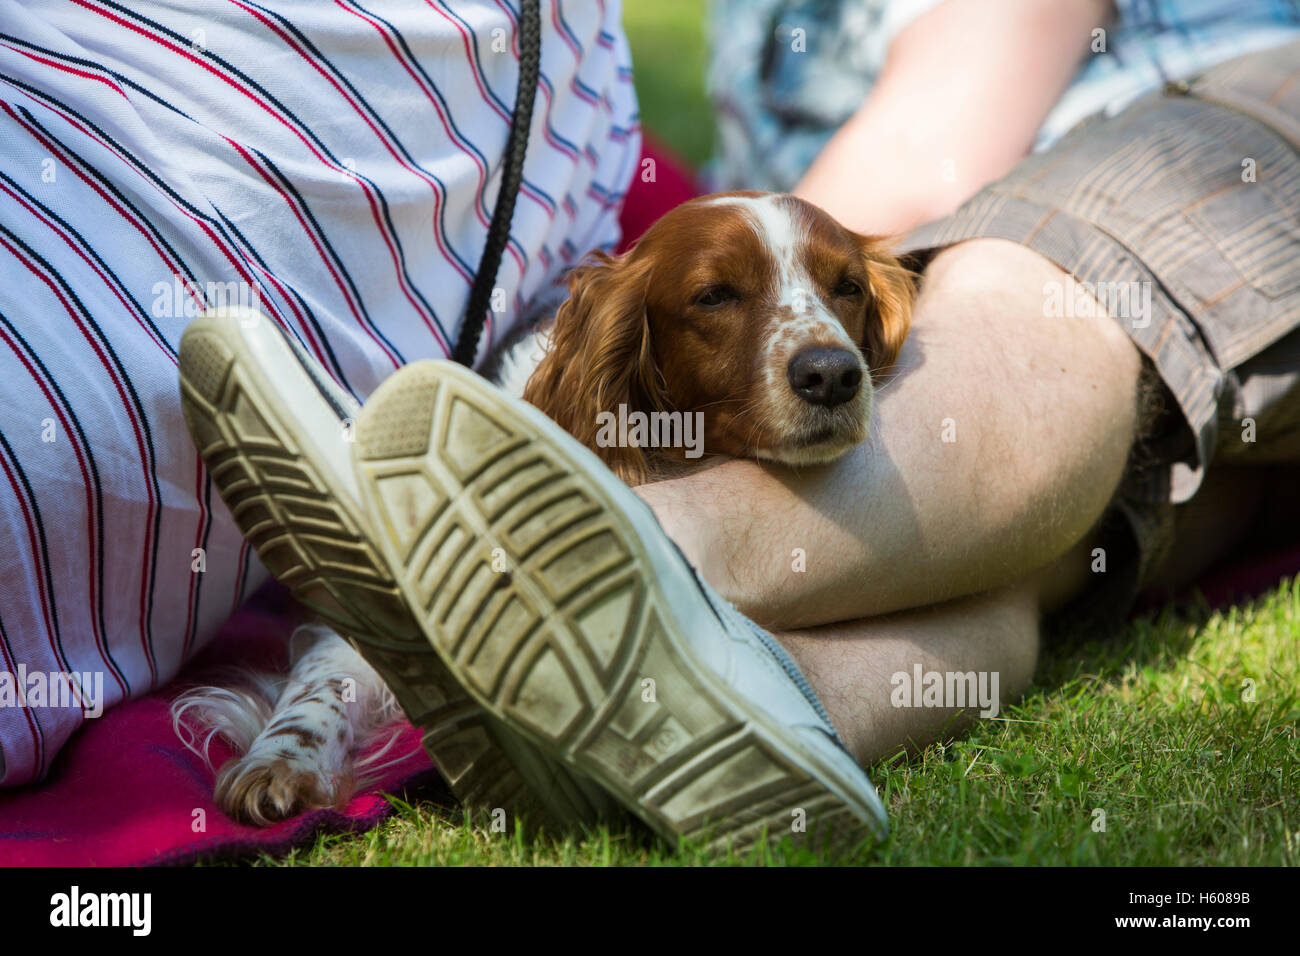 A dog is sleeping against his masters feet. - Stock Image